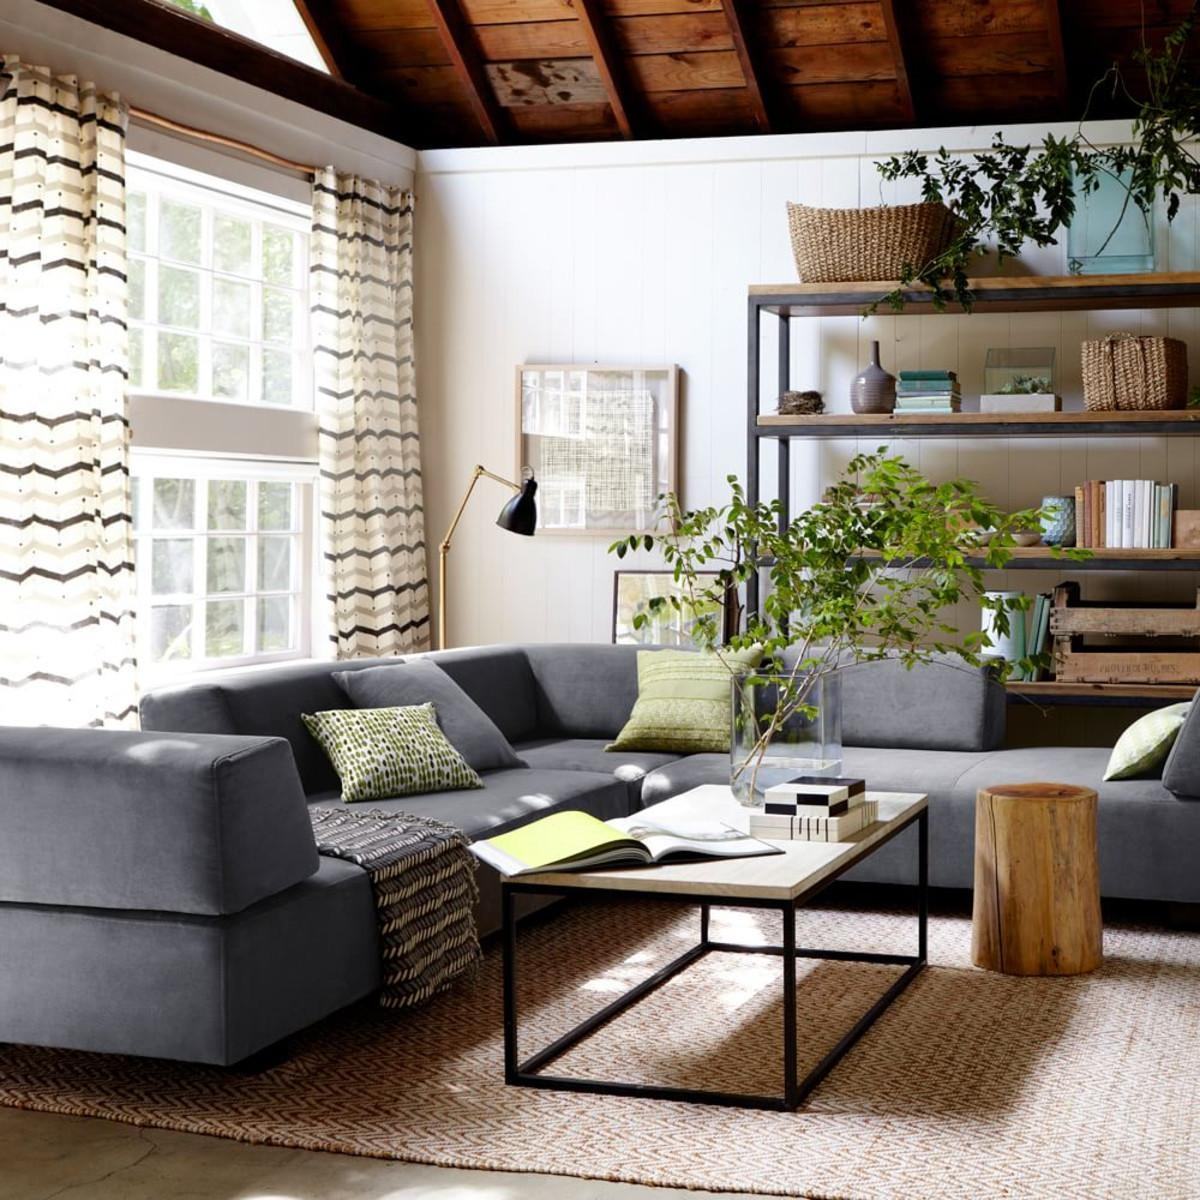 Furniture: Tillary Sofa | West Elm Furniture Quality | West Elm For West Elm Sectional Sofa (View 14 of 20)